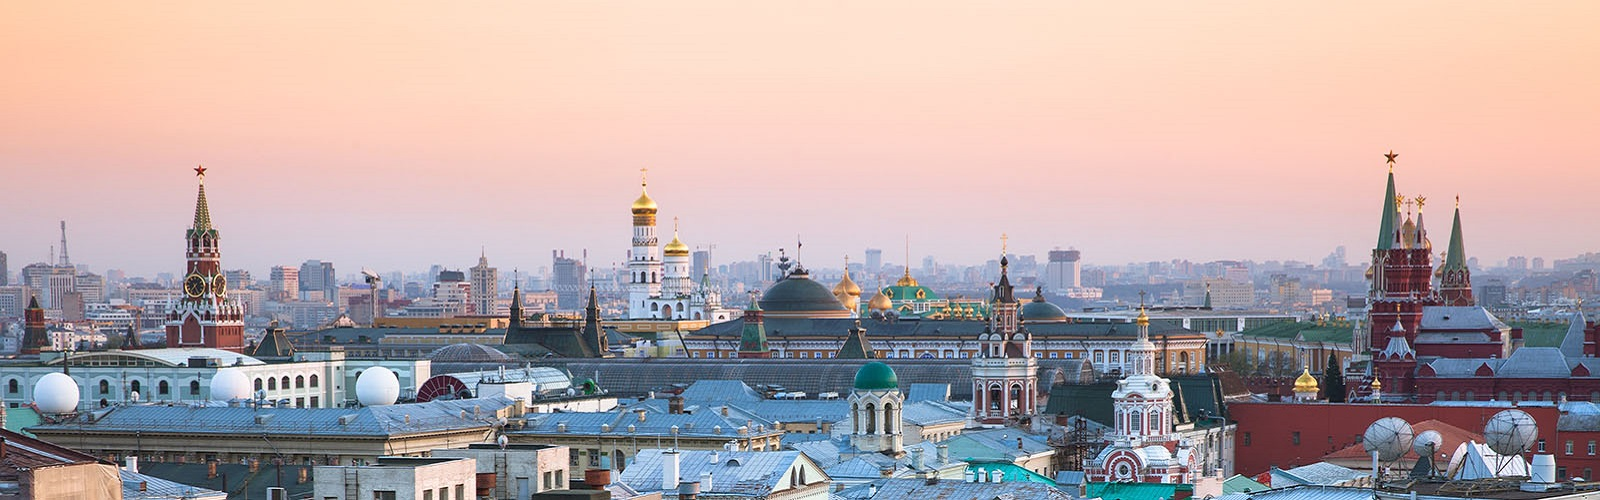 Moscow skyline at twilight